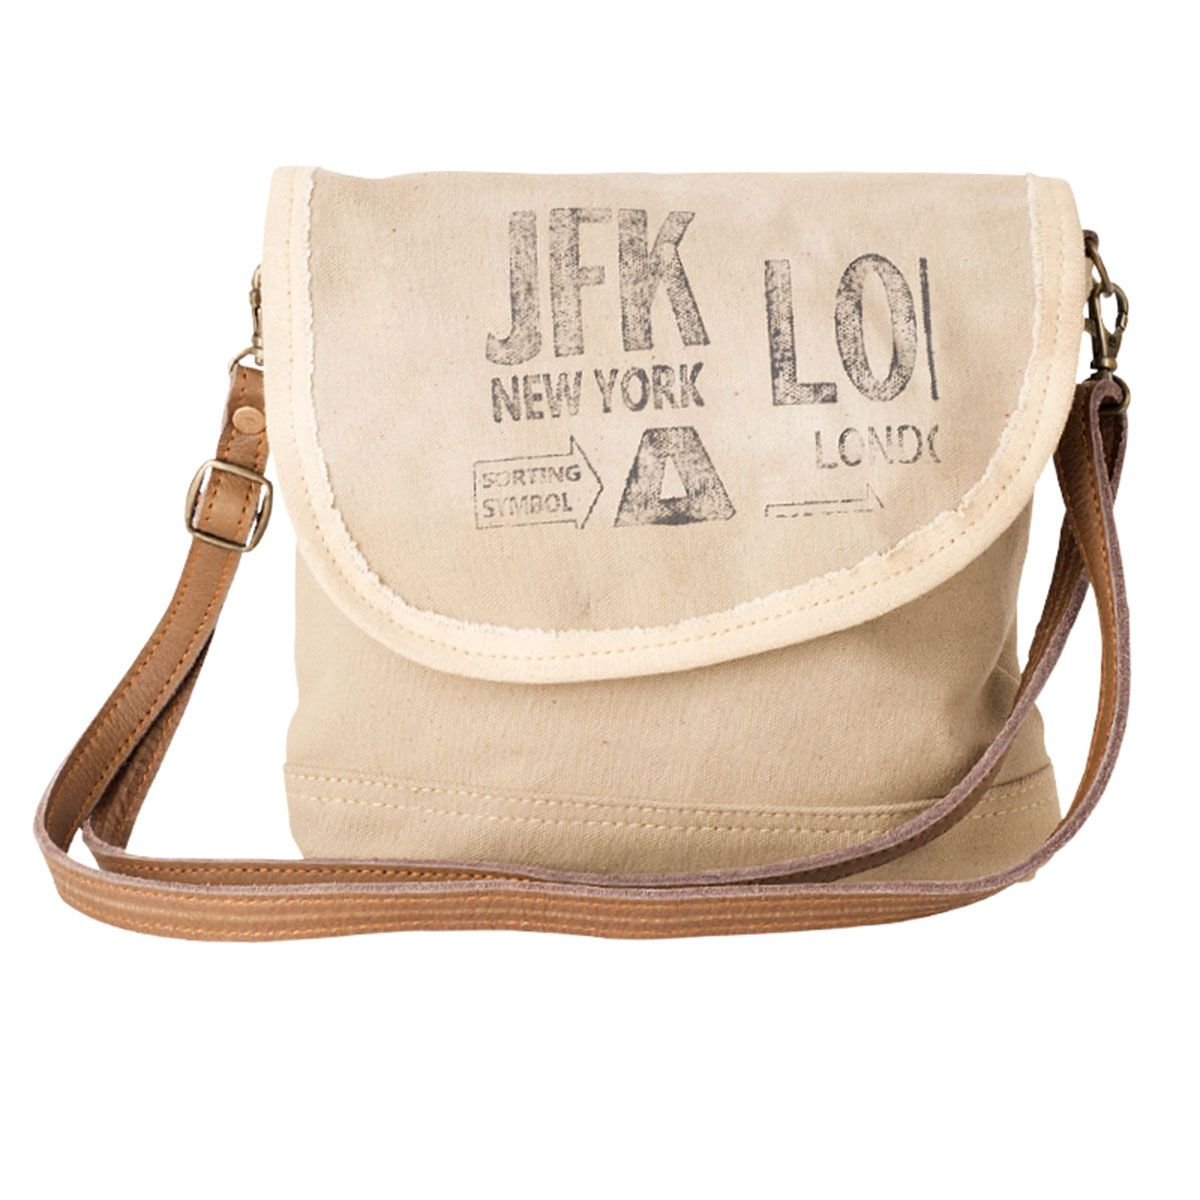 Jfk New York Leather Canvas Small Messenger Bag Purse By Clea Ray